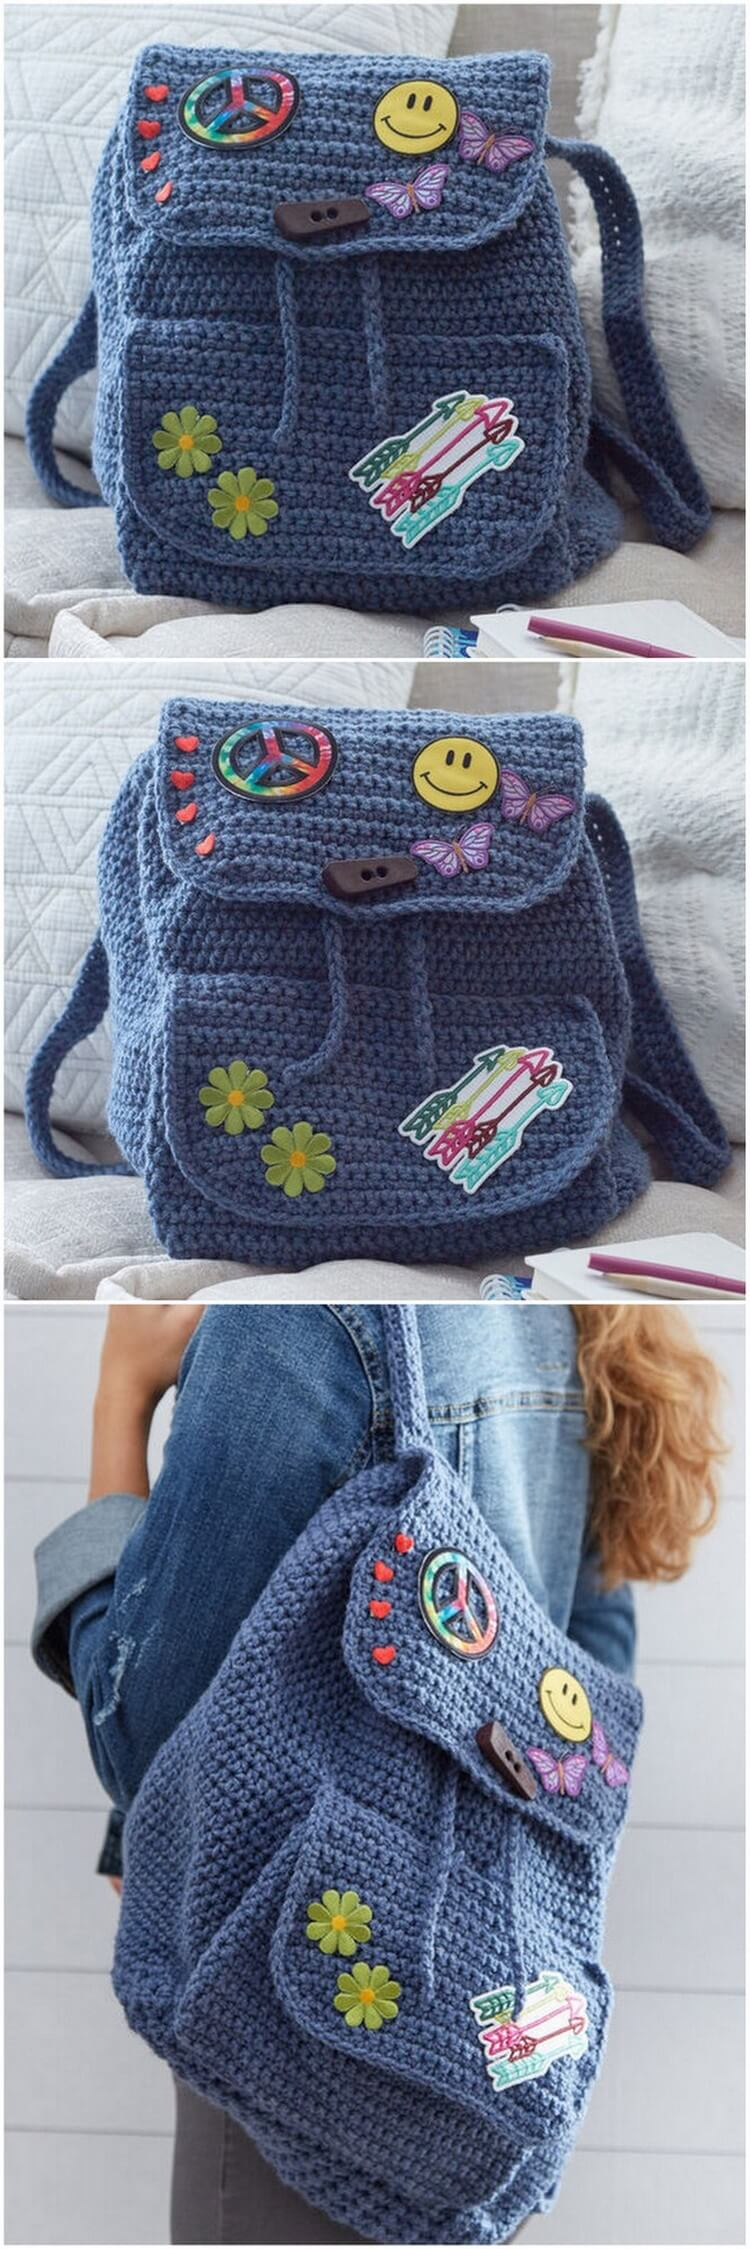 Crochet Backpack Pattern (42)